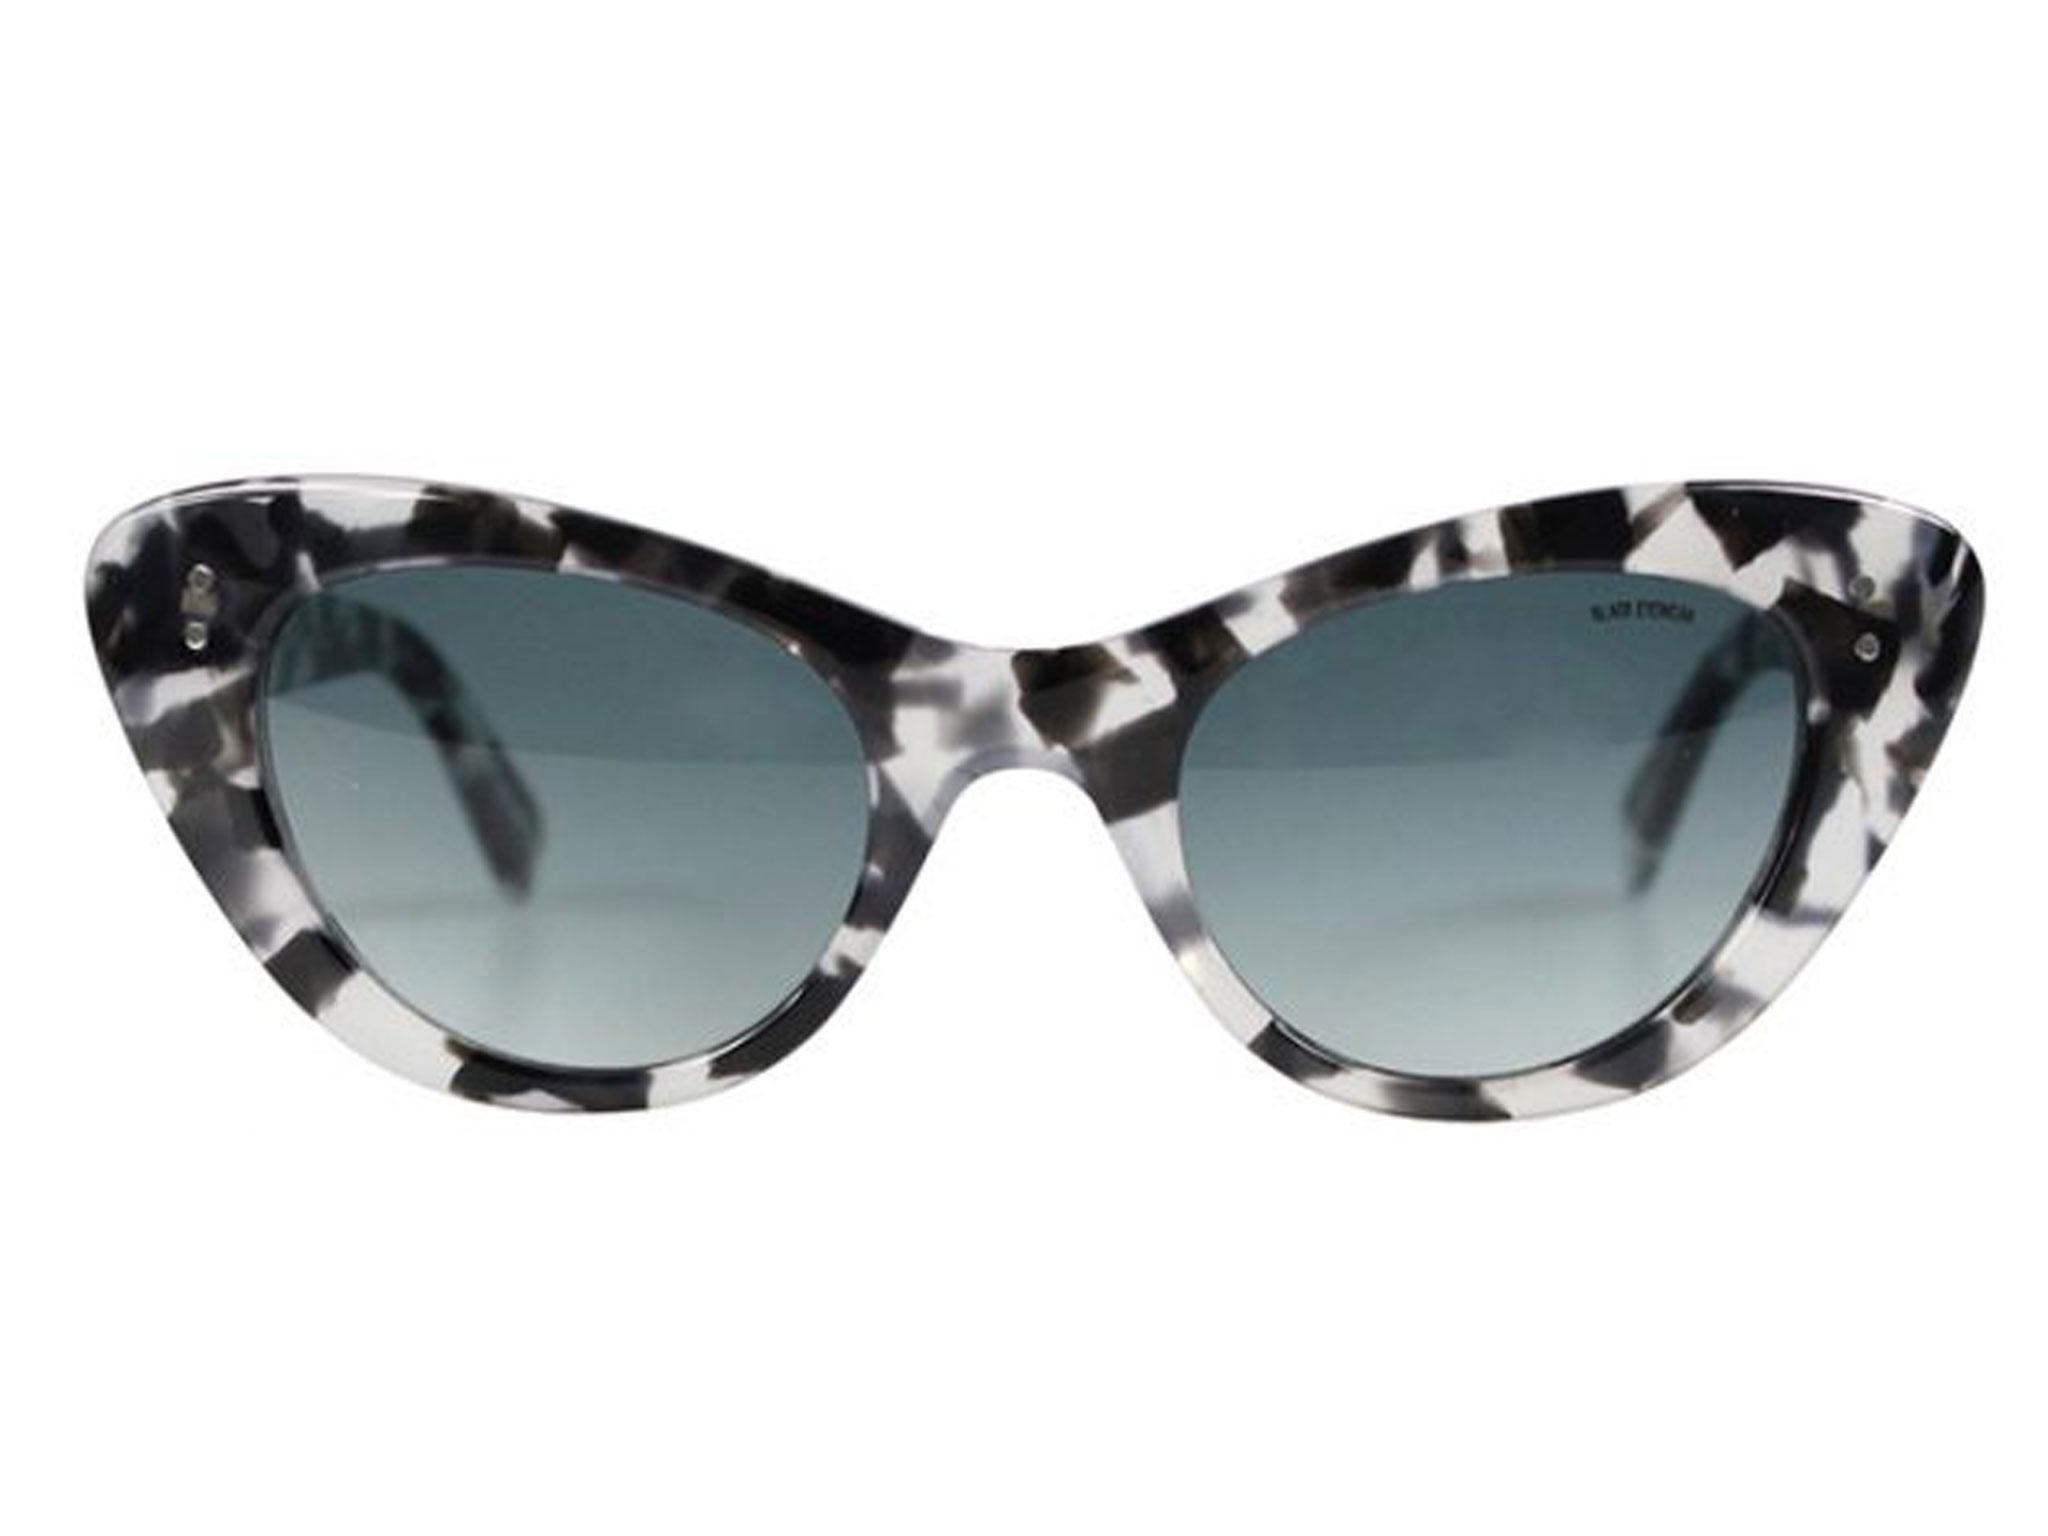 0dcc13b4d994 8 best women's sunglasses | The Independent